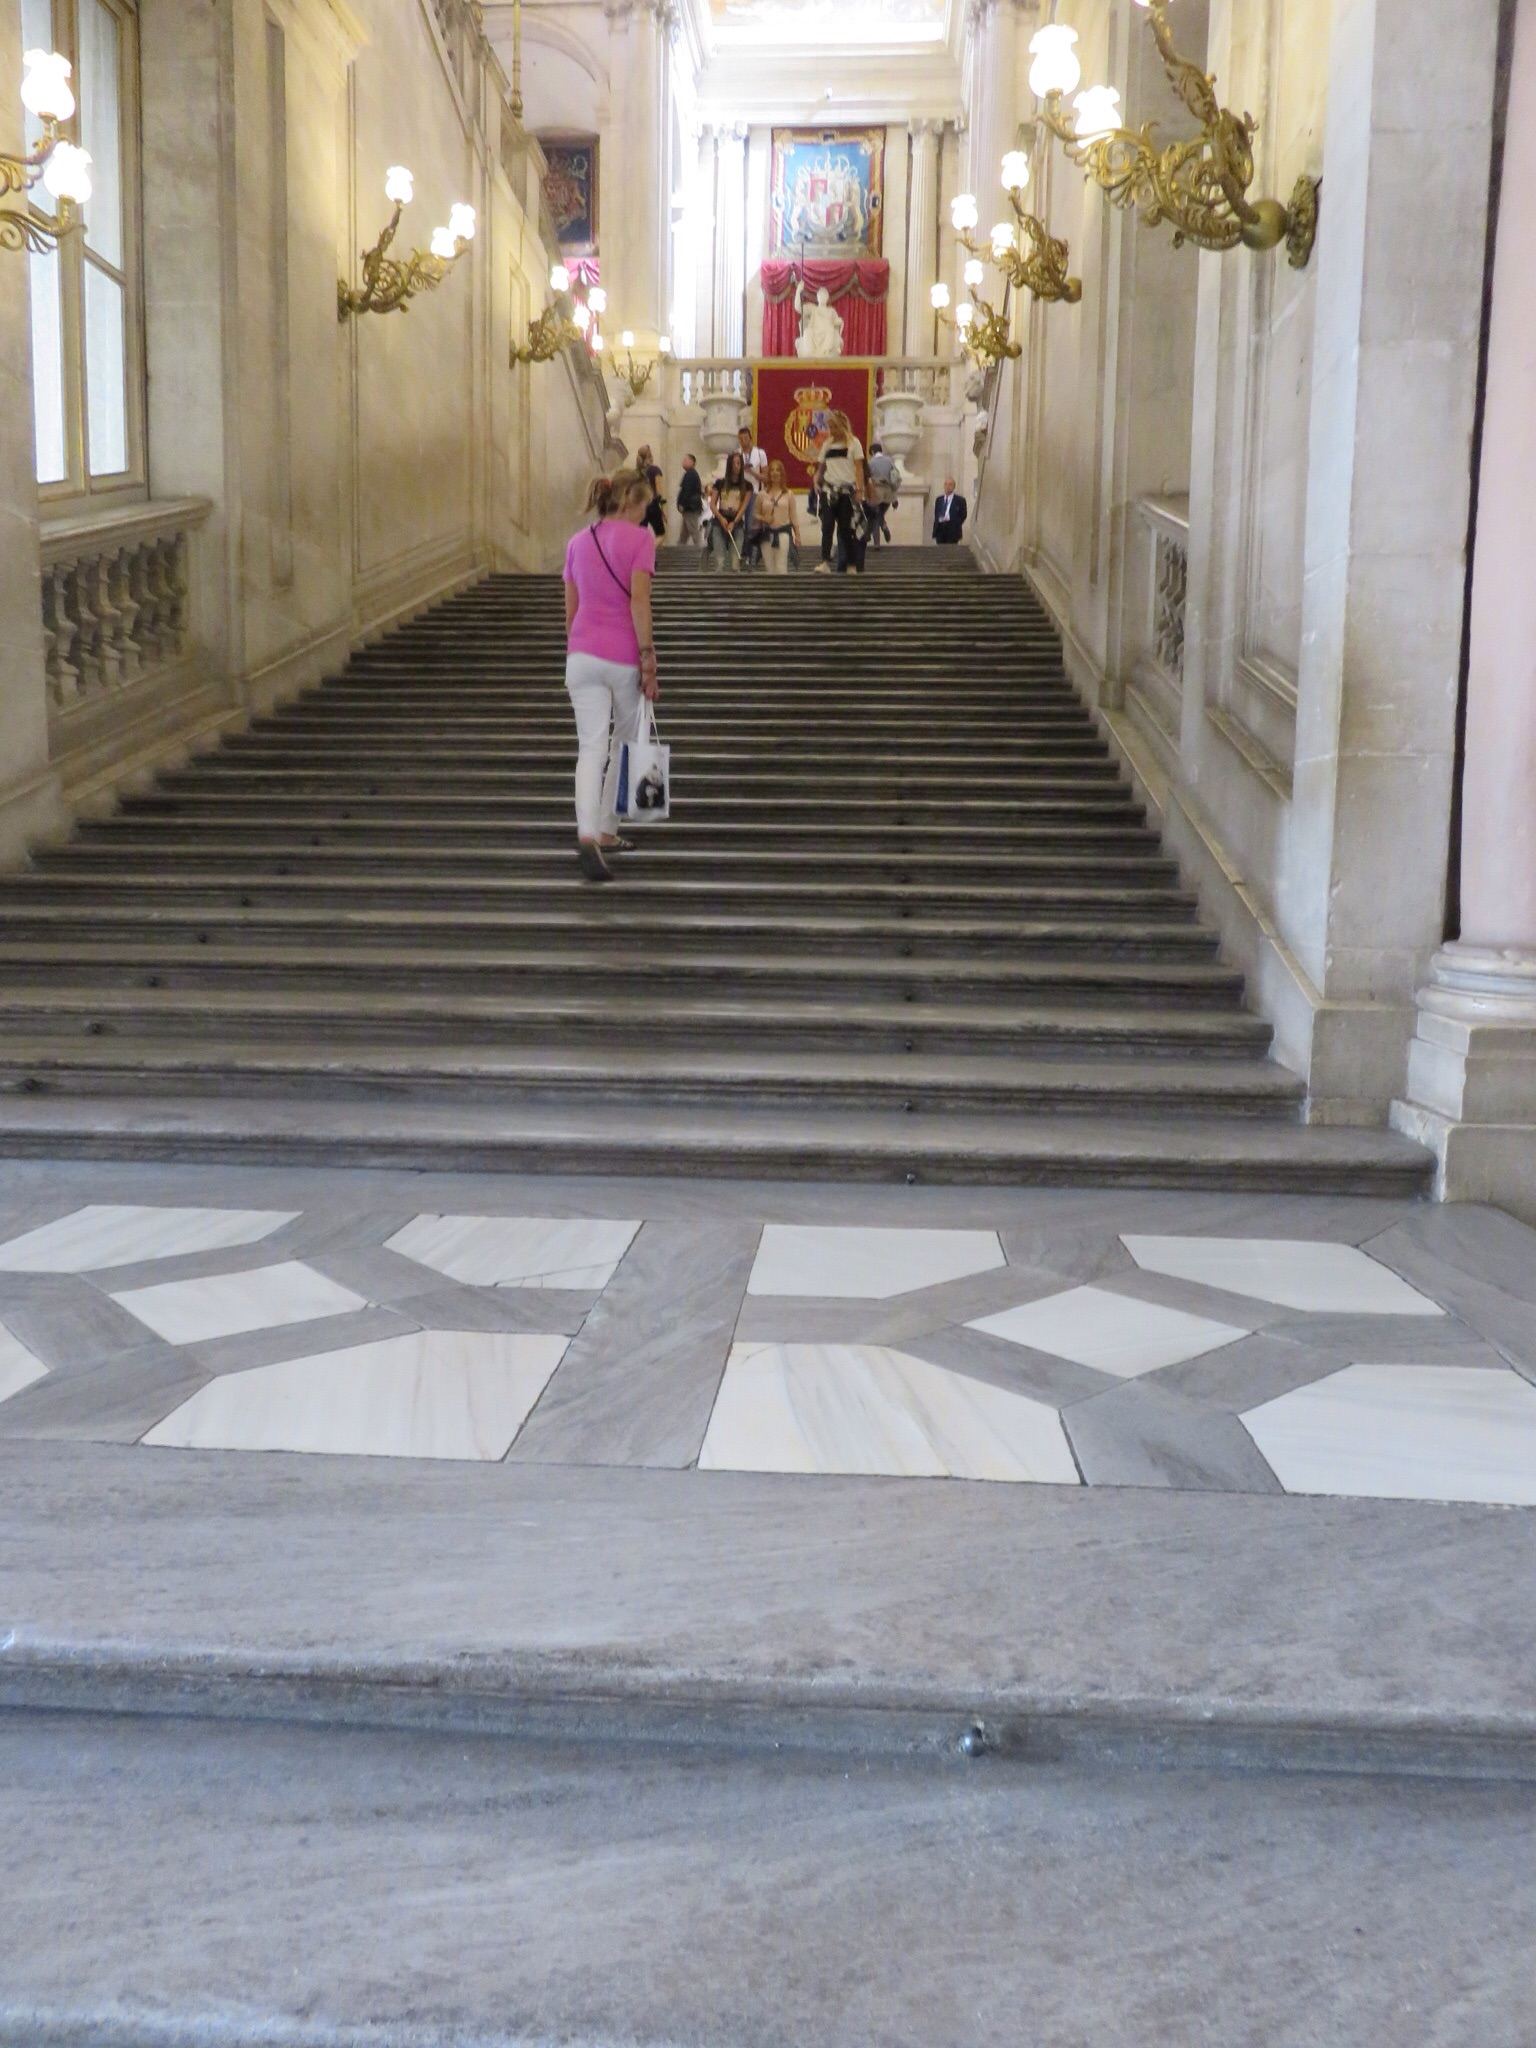 Grand stairs of the Palace lobby